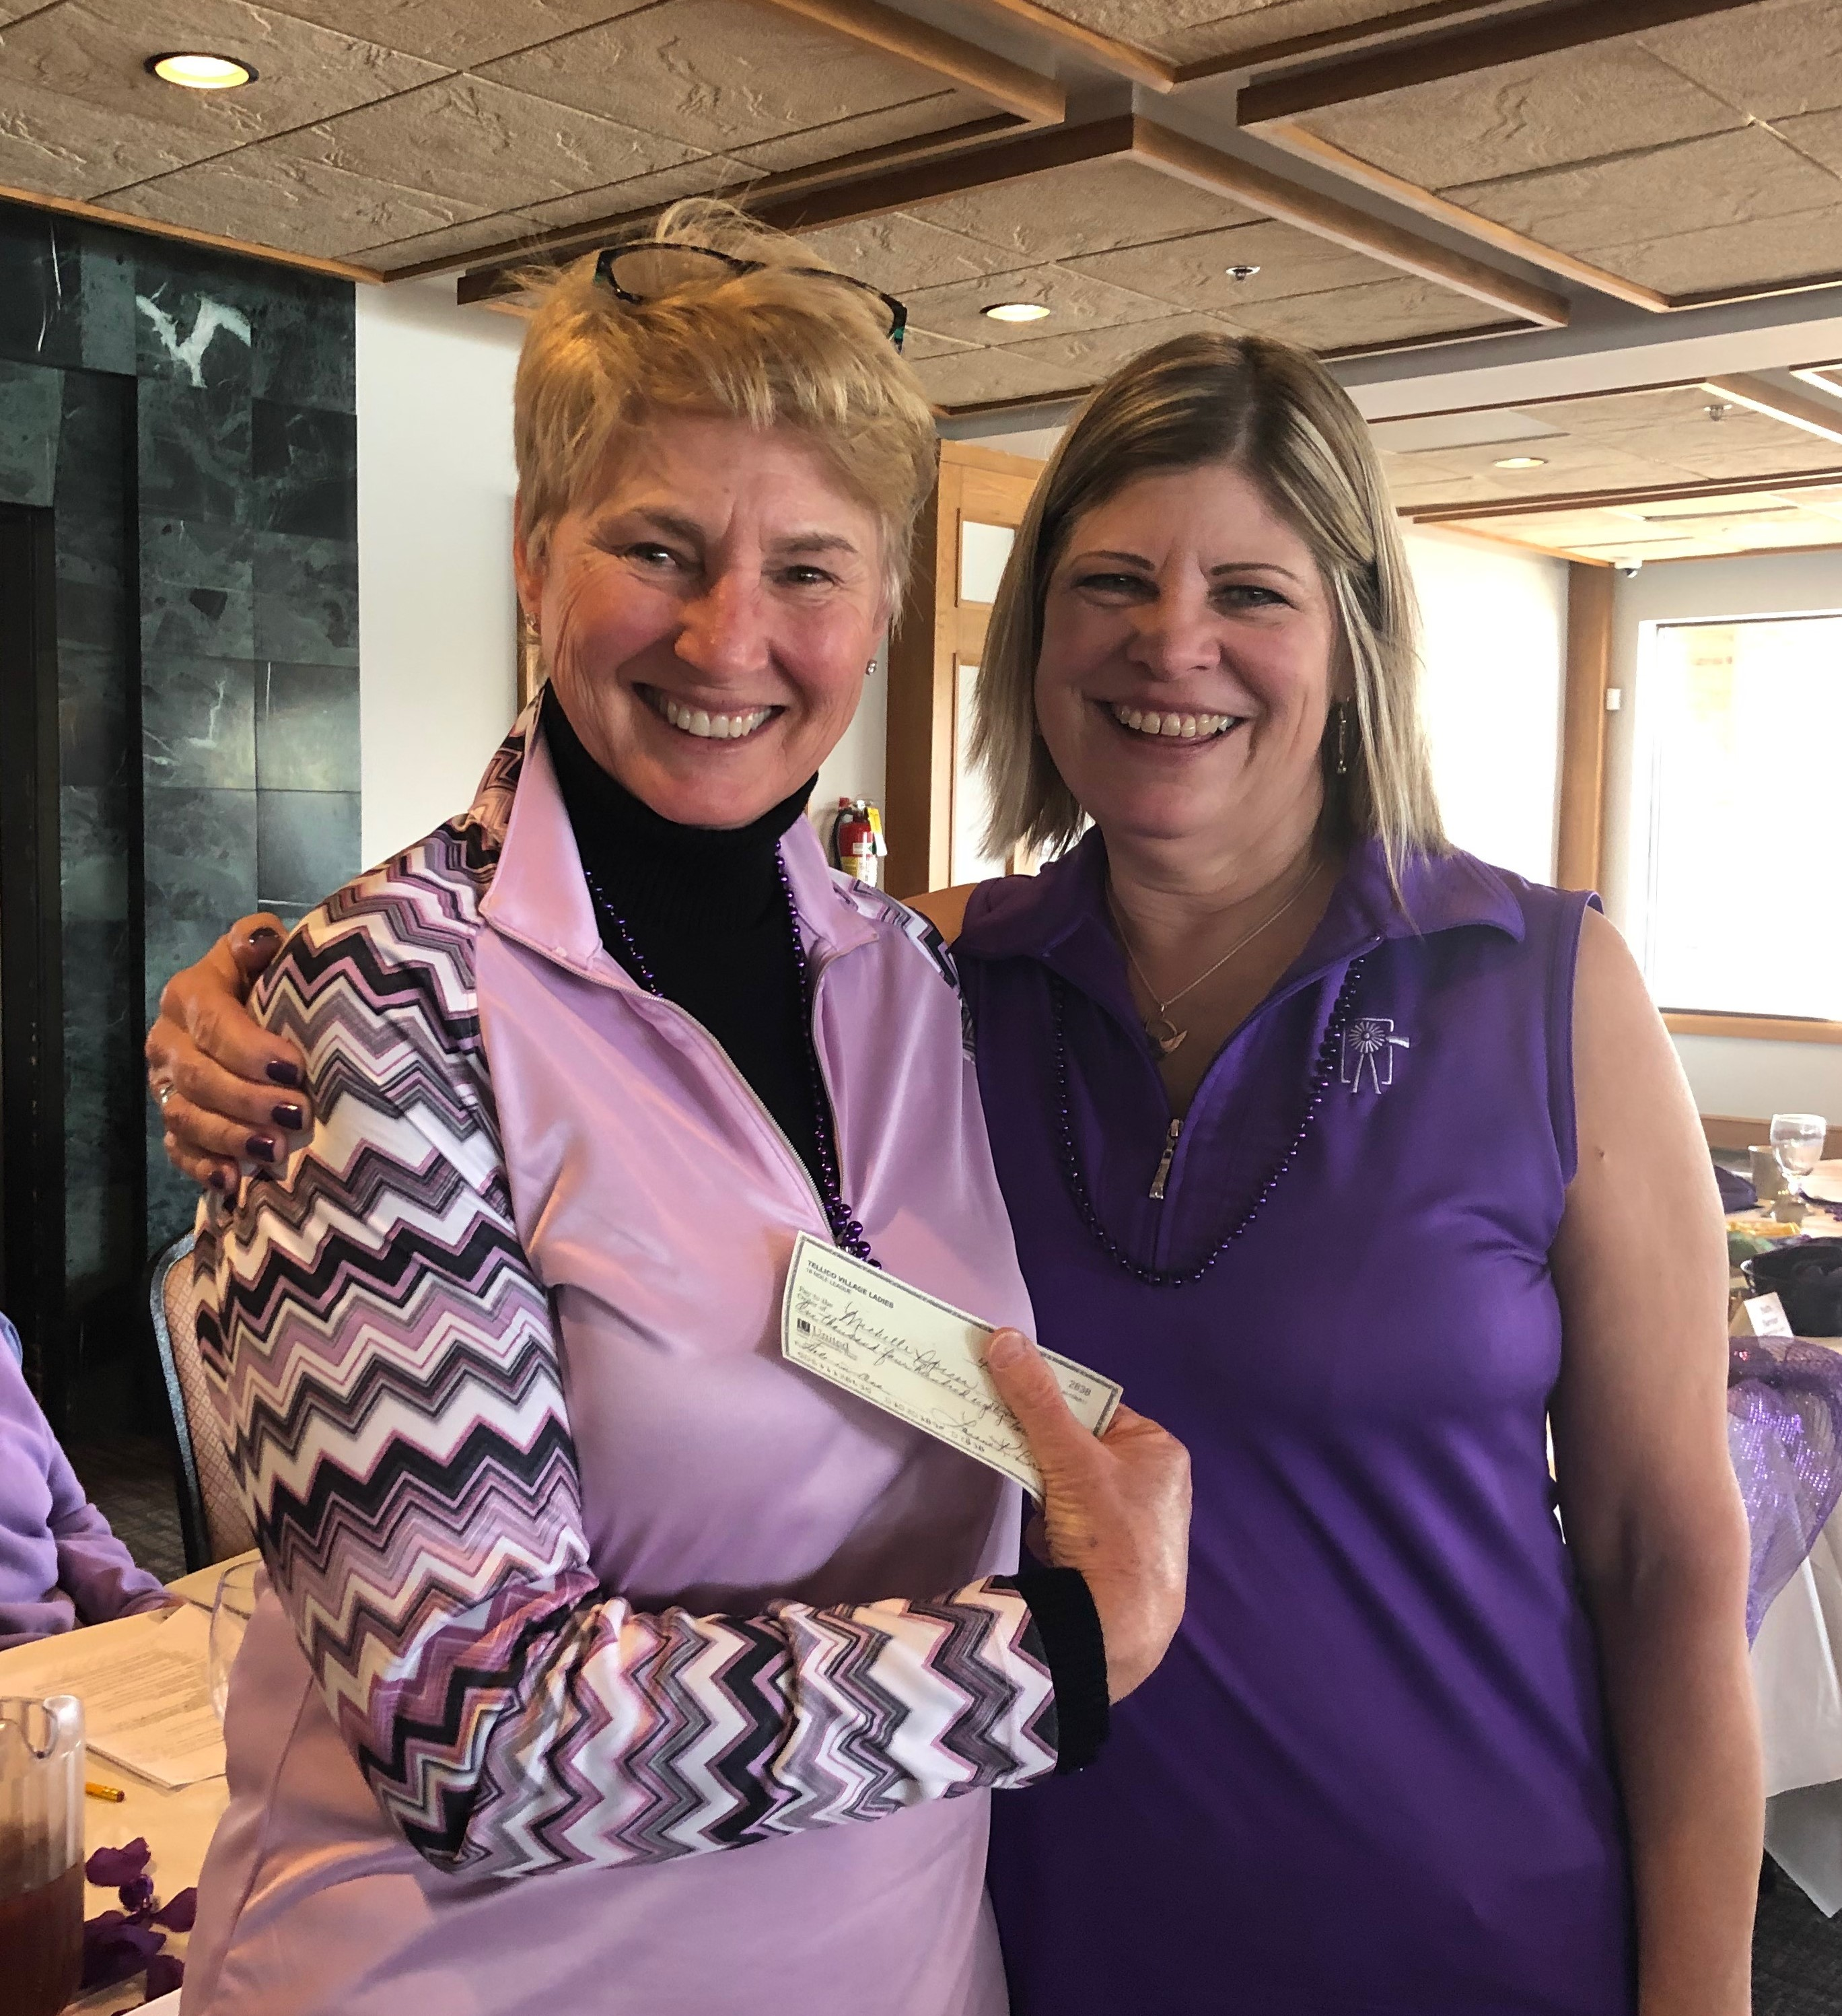 Michele Spicer, 2018 Hole in One Winner